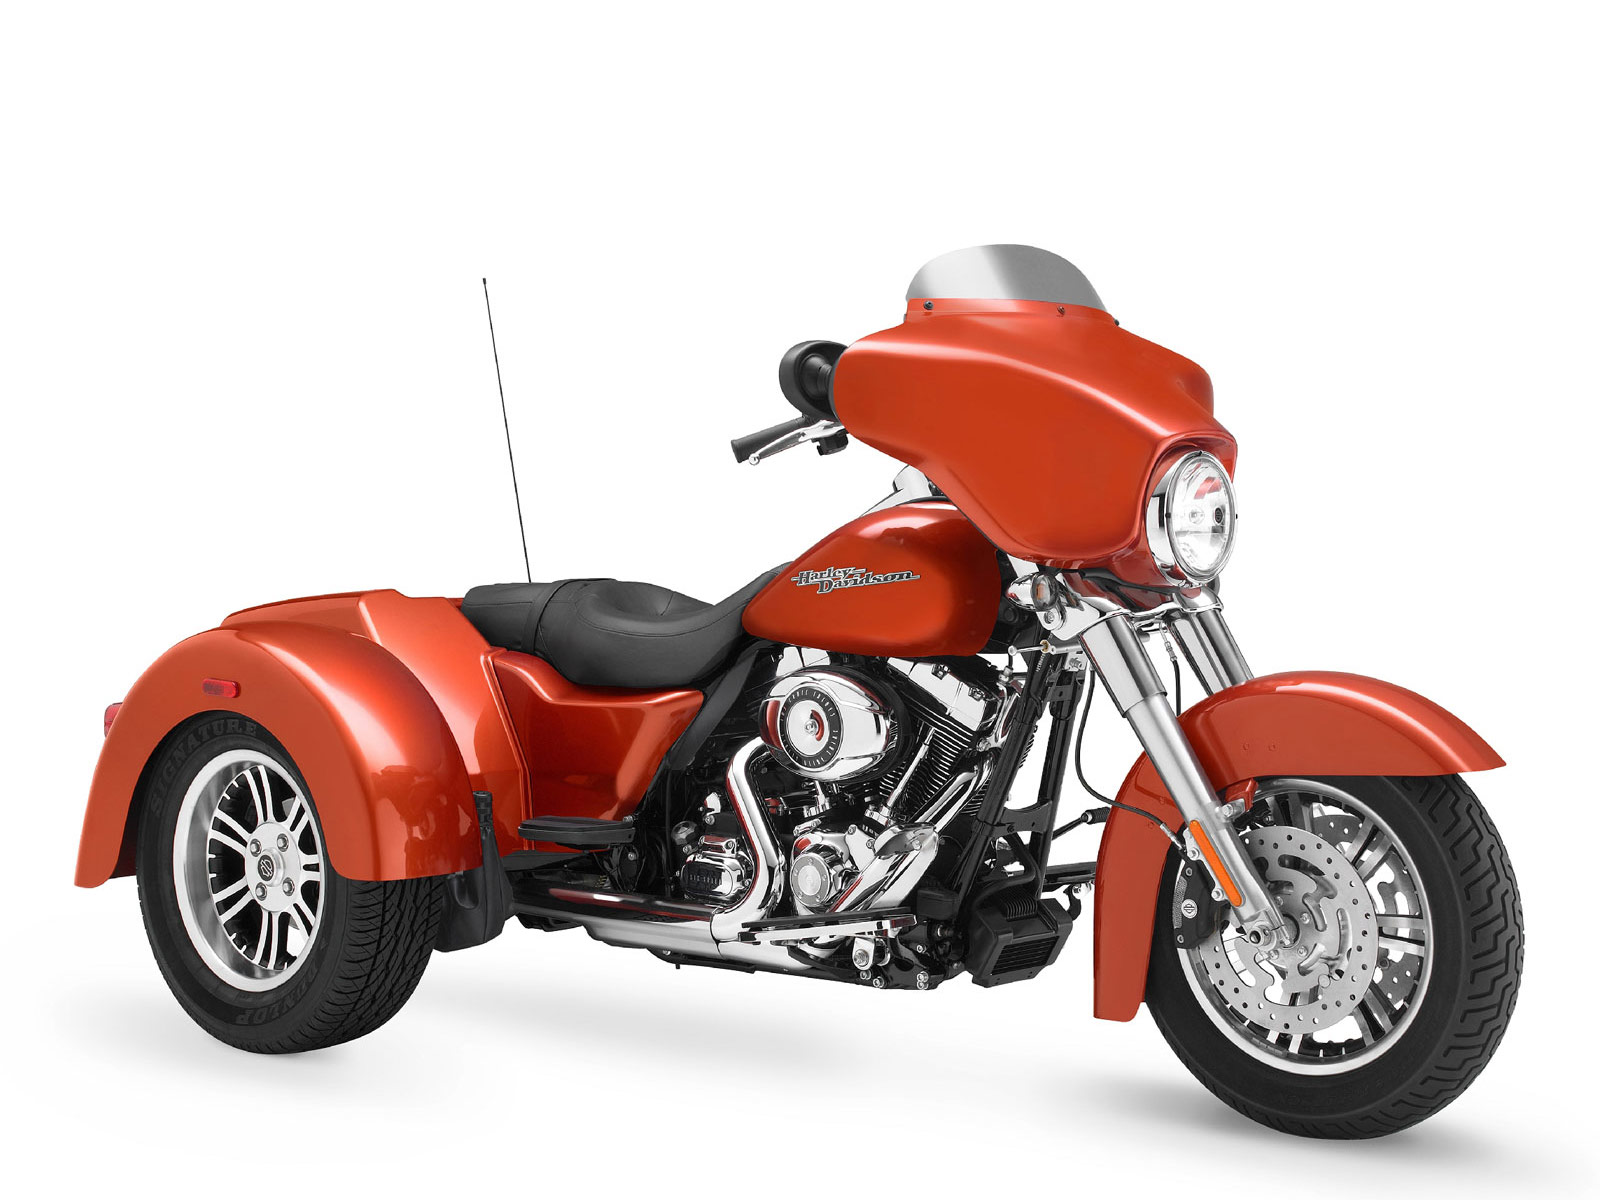 2011 FLHXXX Street Glide Trike wallpapers  Accident lawyers    harley